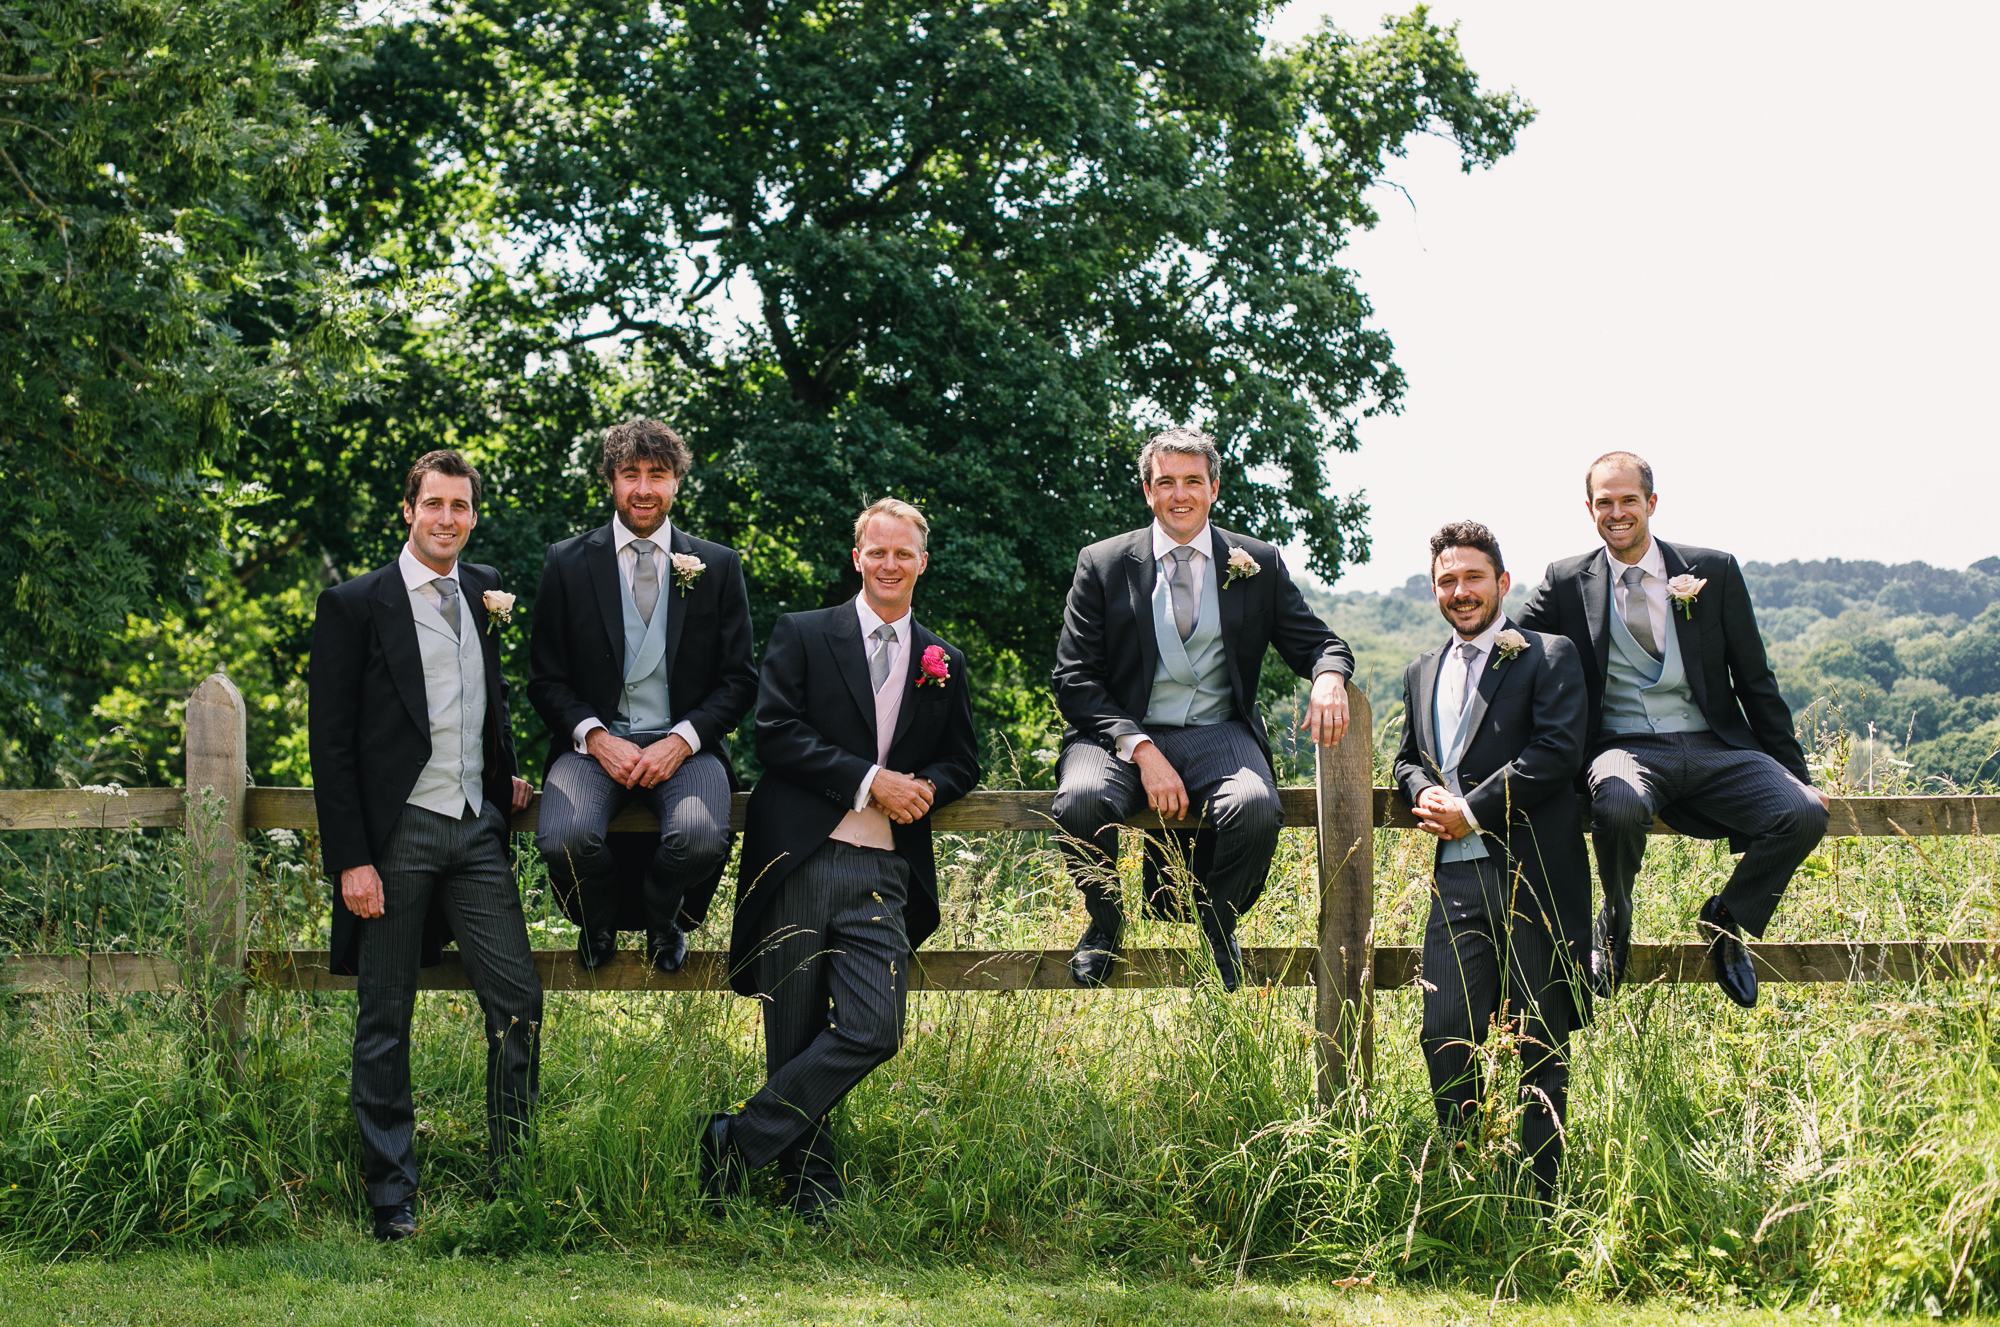 Hampshire wedding photographers 022.jpg